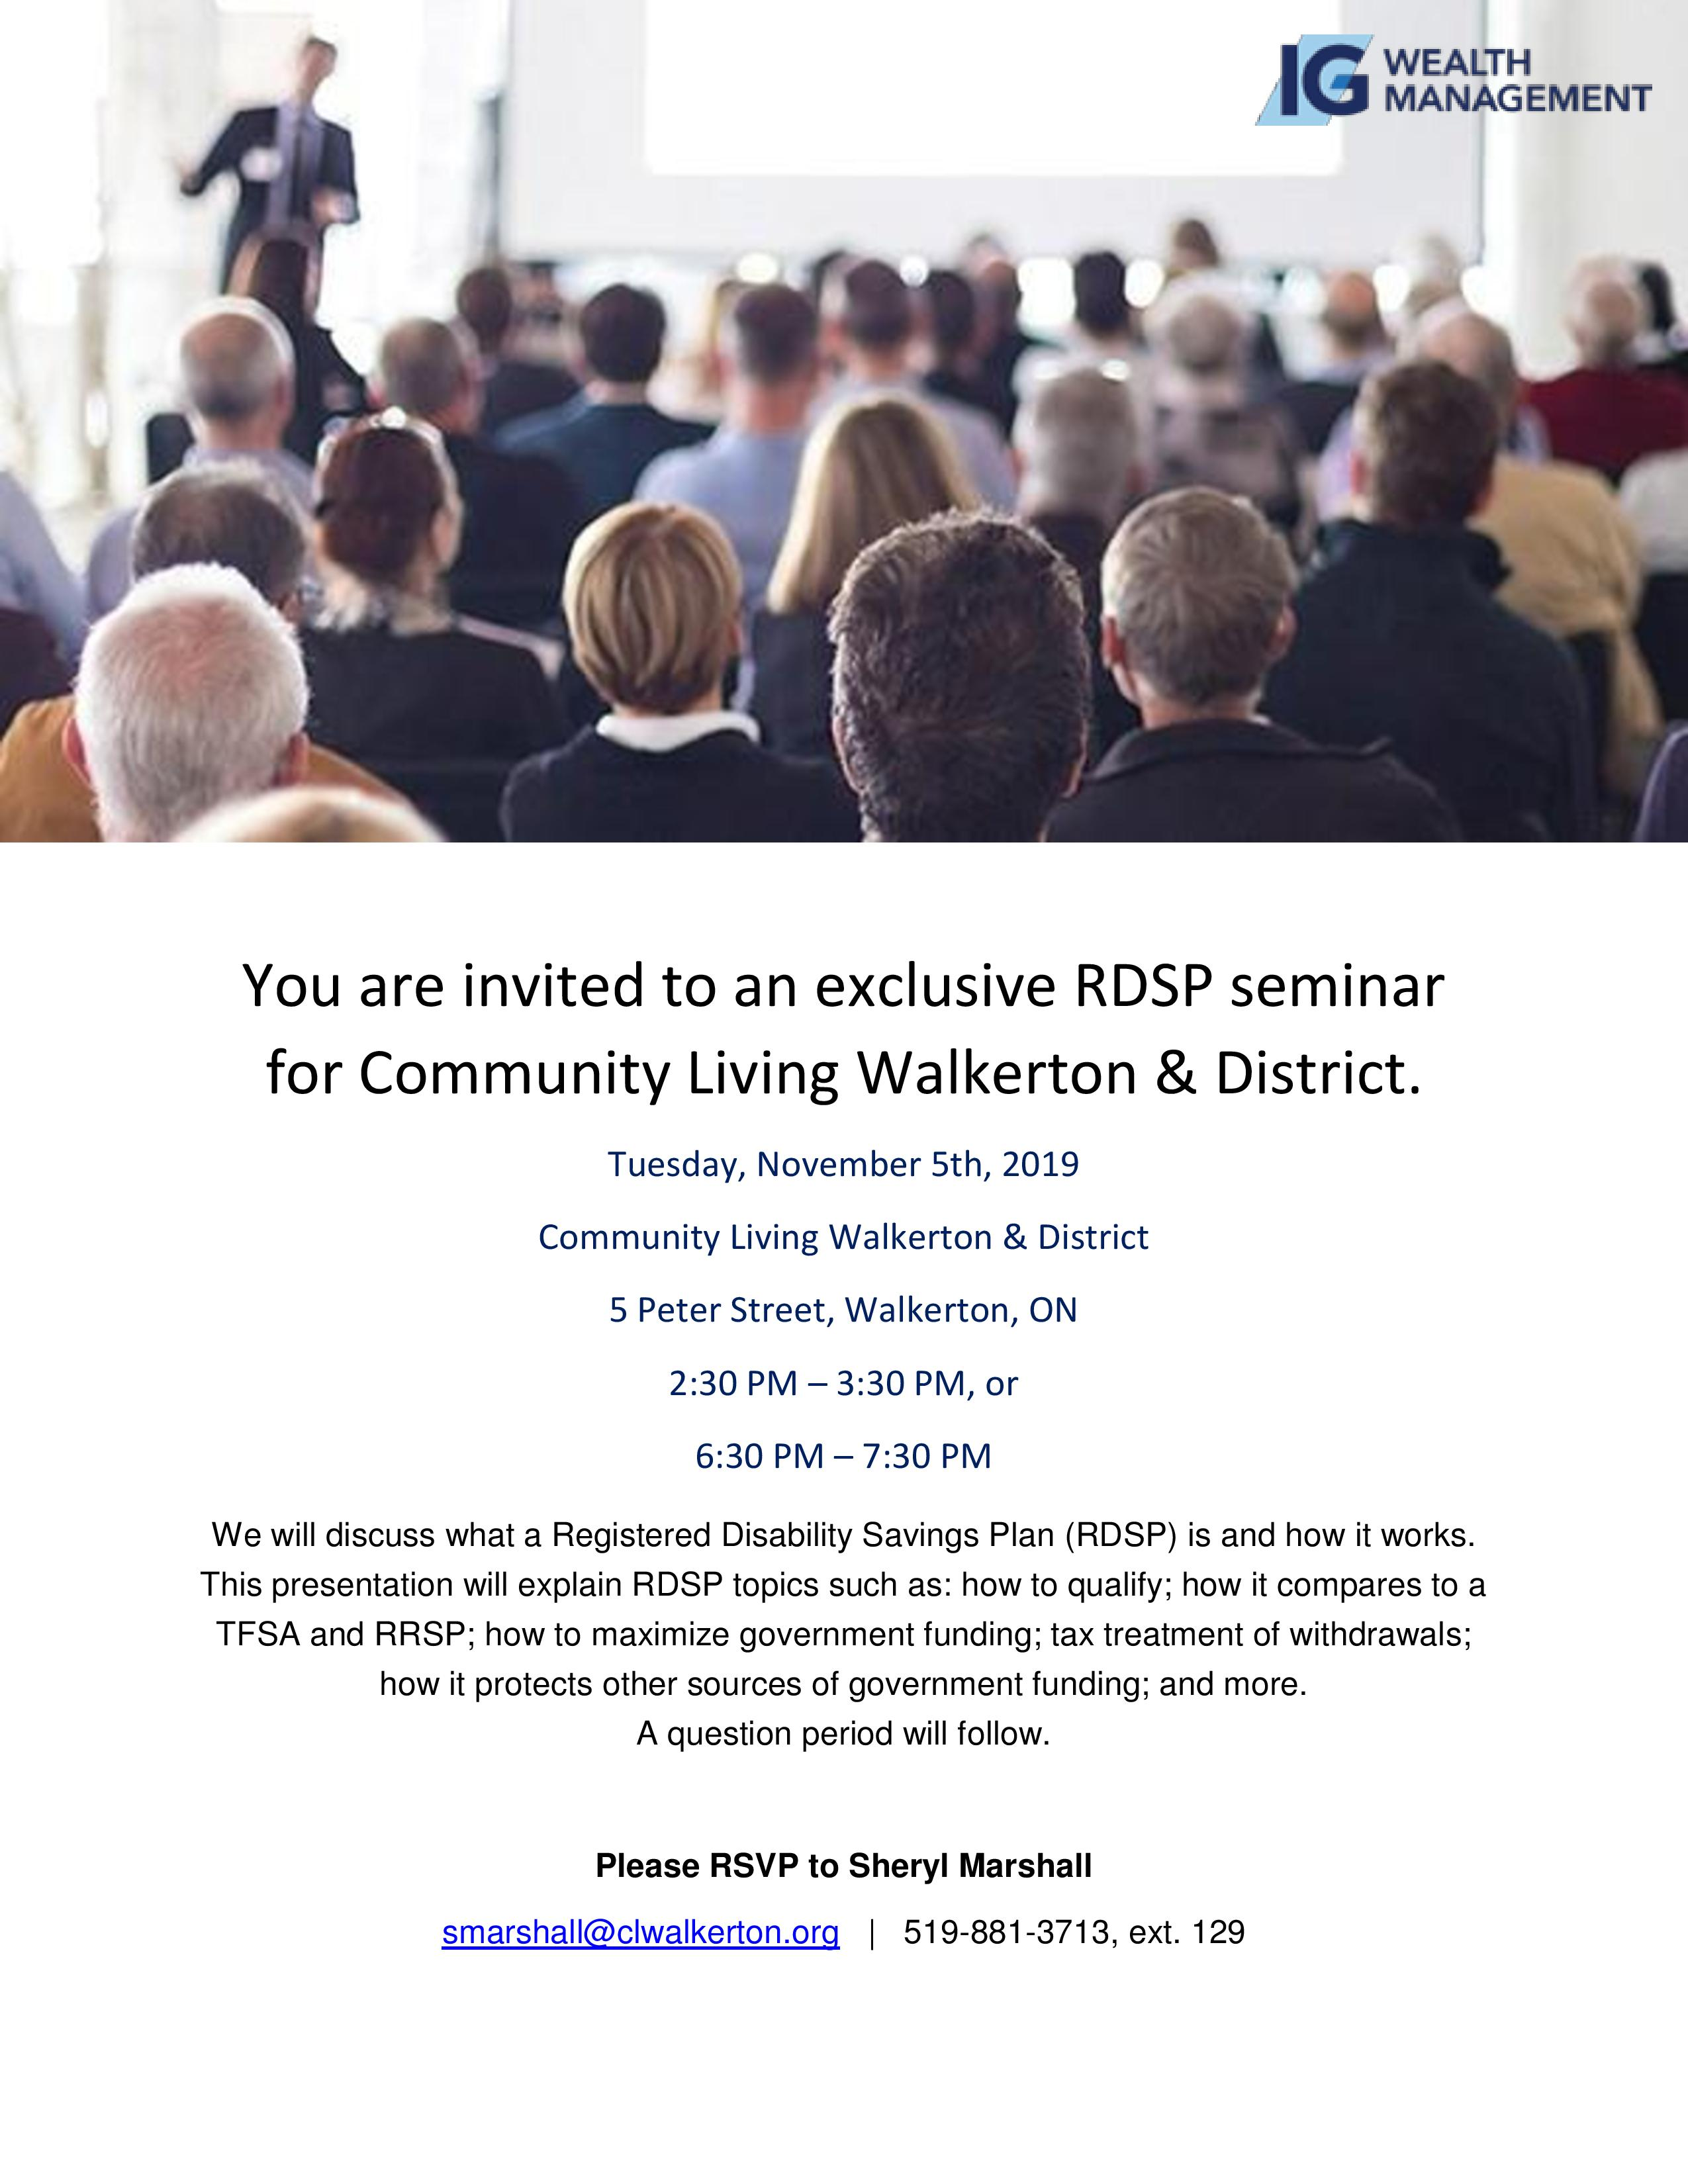 Inviation poster fior RSDP session Nov. 5 in Walkerton